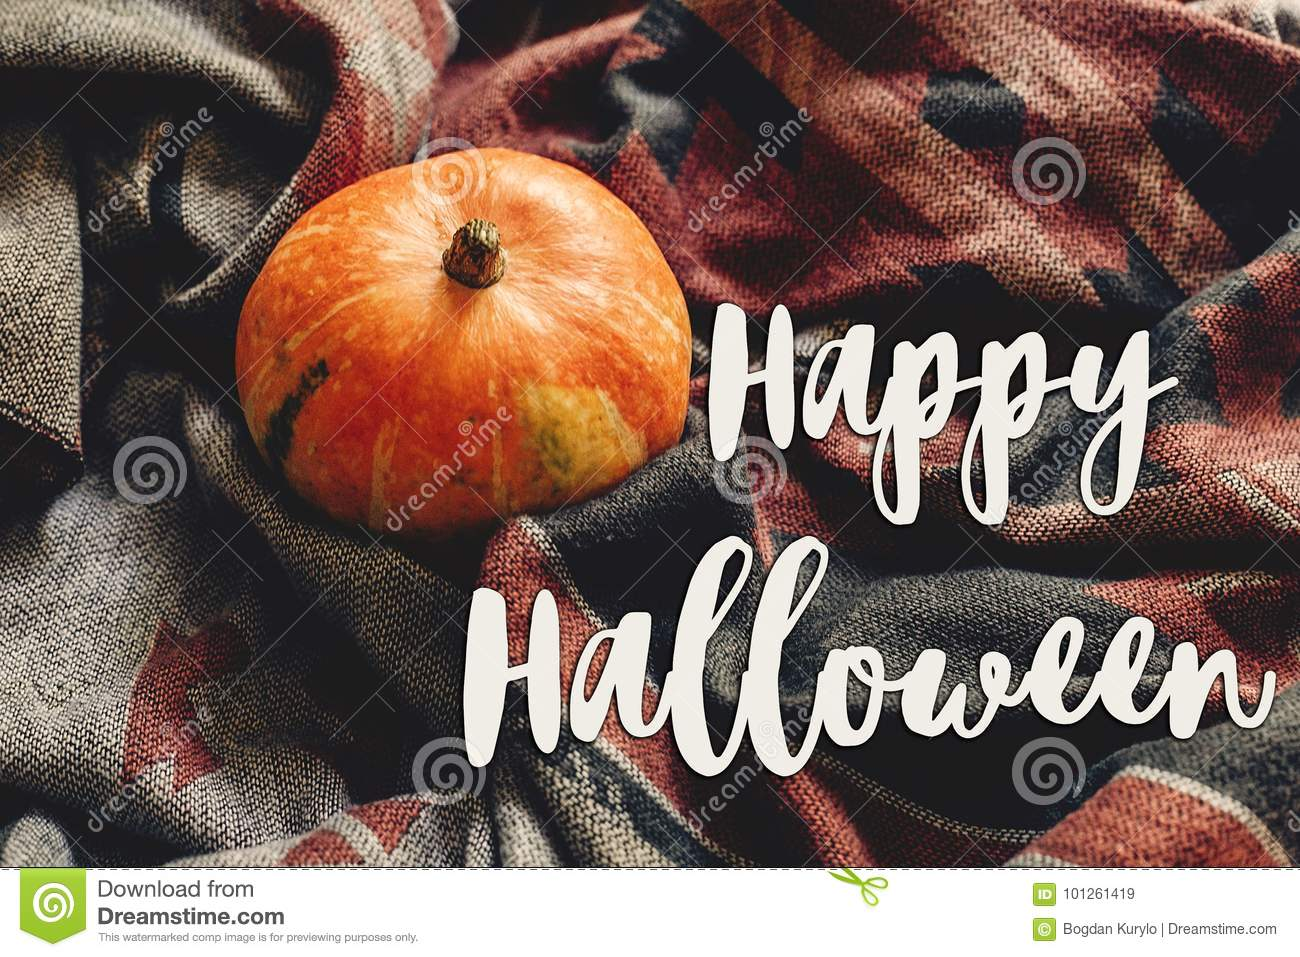 Happy halloween text sign on autumn pumpkin on stylish scarf fab happy halloween text sign on autumn pumpkin on stylish scarf fabric space for text seasonal greetings fall holidays harvest time cozy mood m4hsunfo